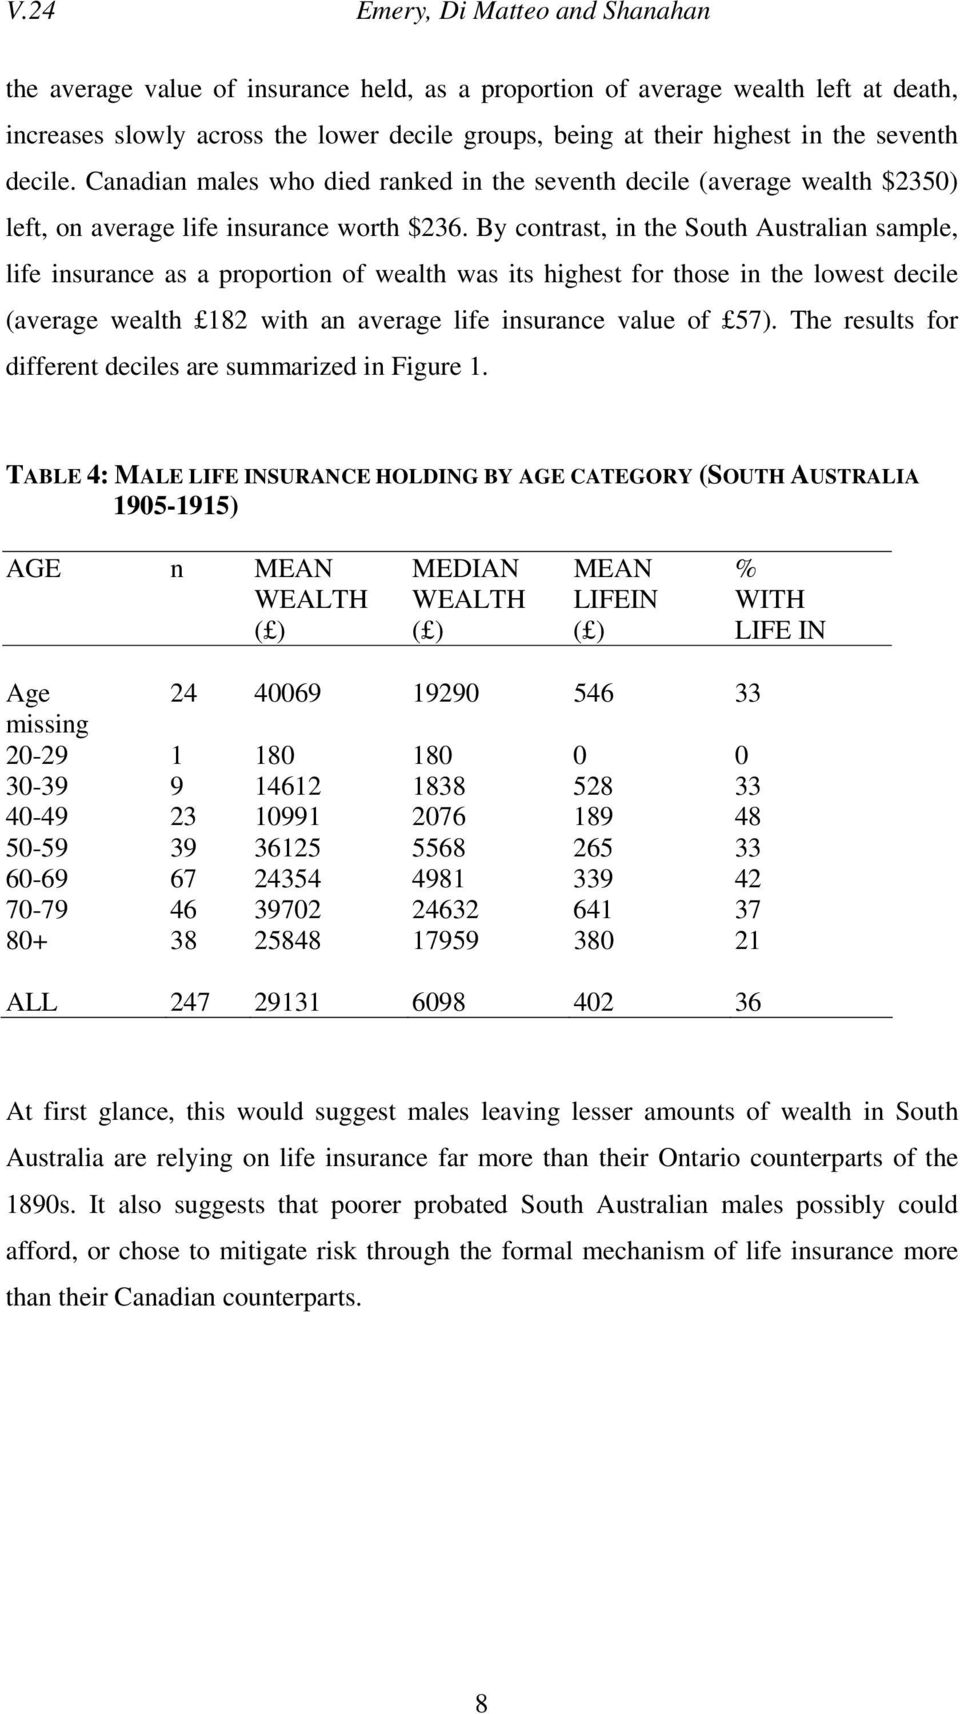 By contrast, in the South Australian sample, life insurance as a proportion of wealth was its highest for those in the lowest decile (average wealth 182 with an average life insurance value of 57).